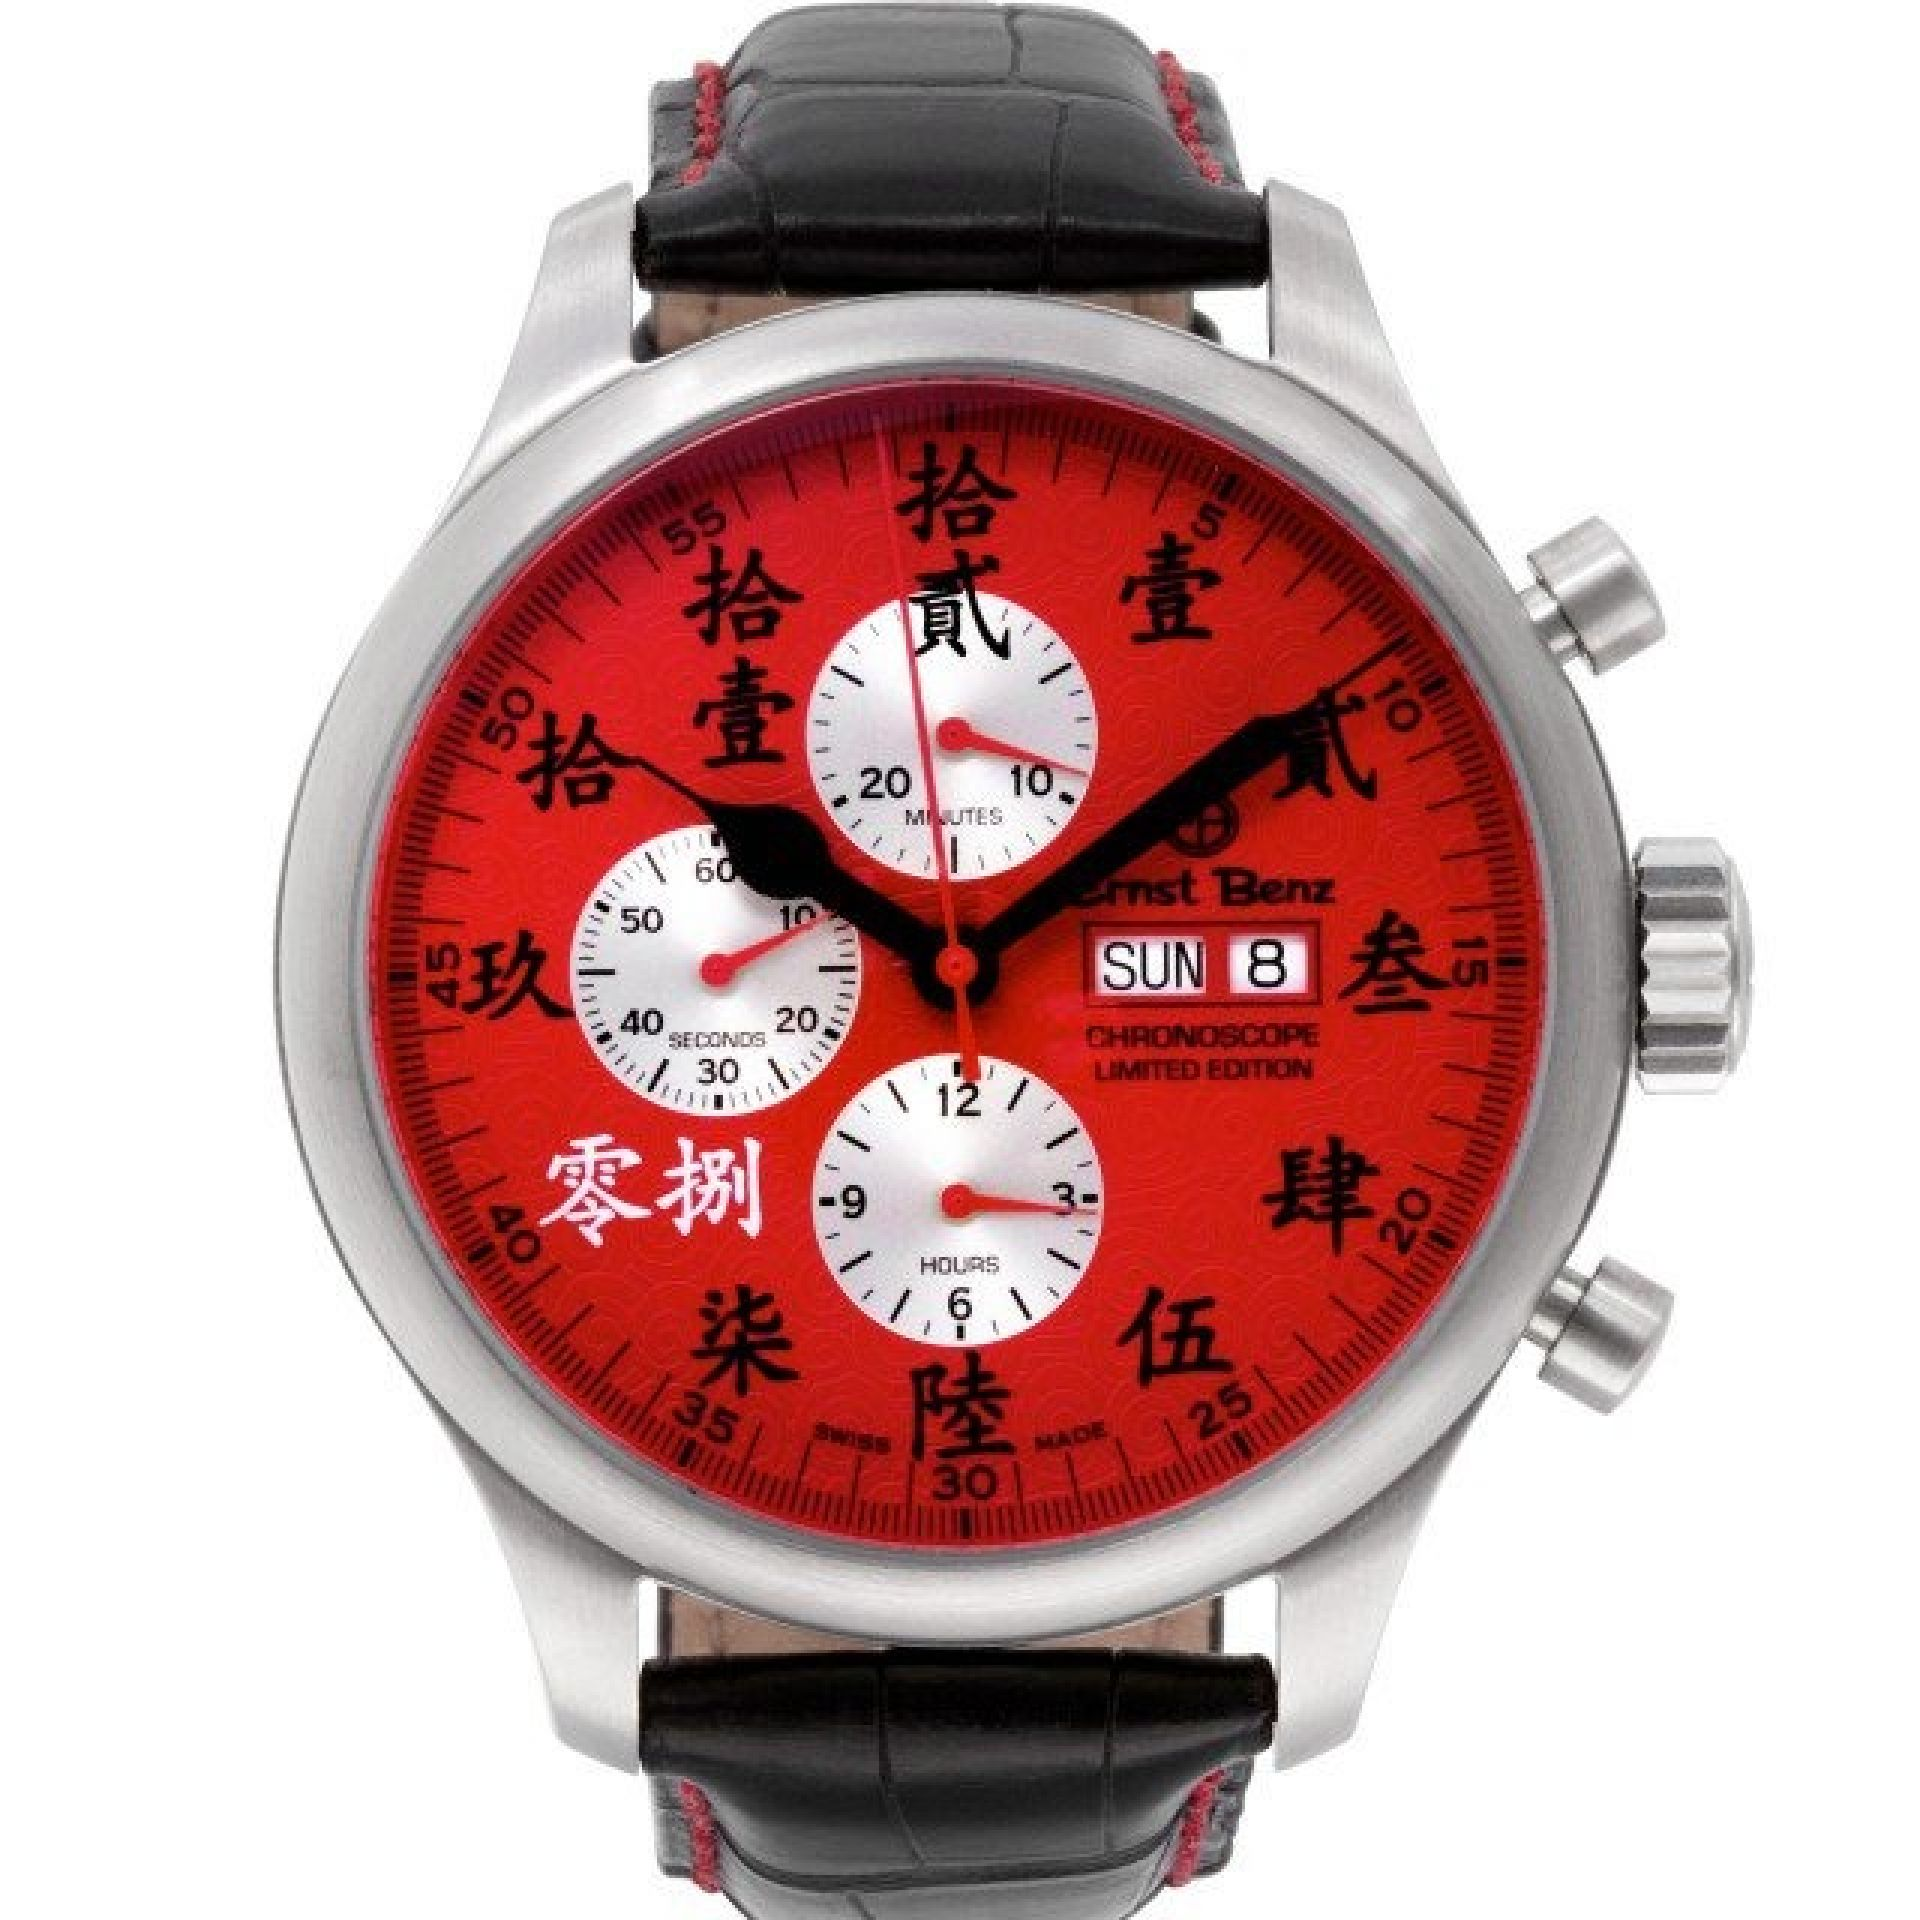 Ernst Benz Chronoscope 10100V-PEK stainless steel Red dial 47mm auto watch